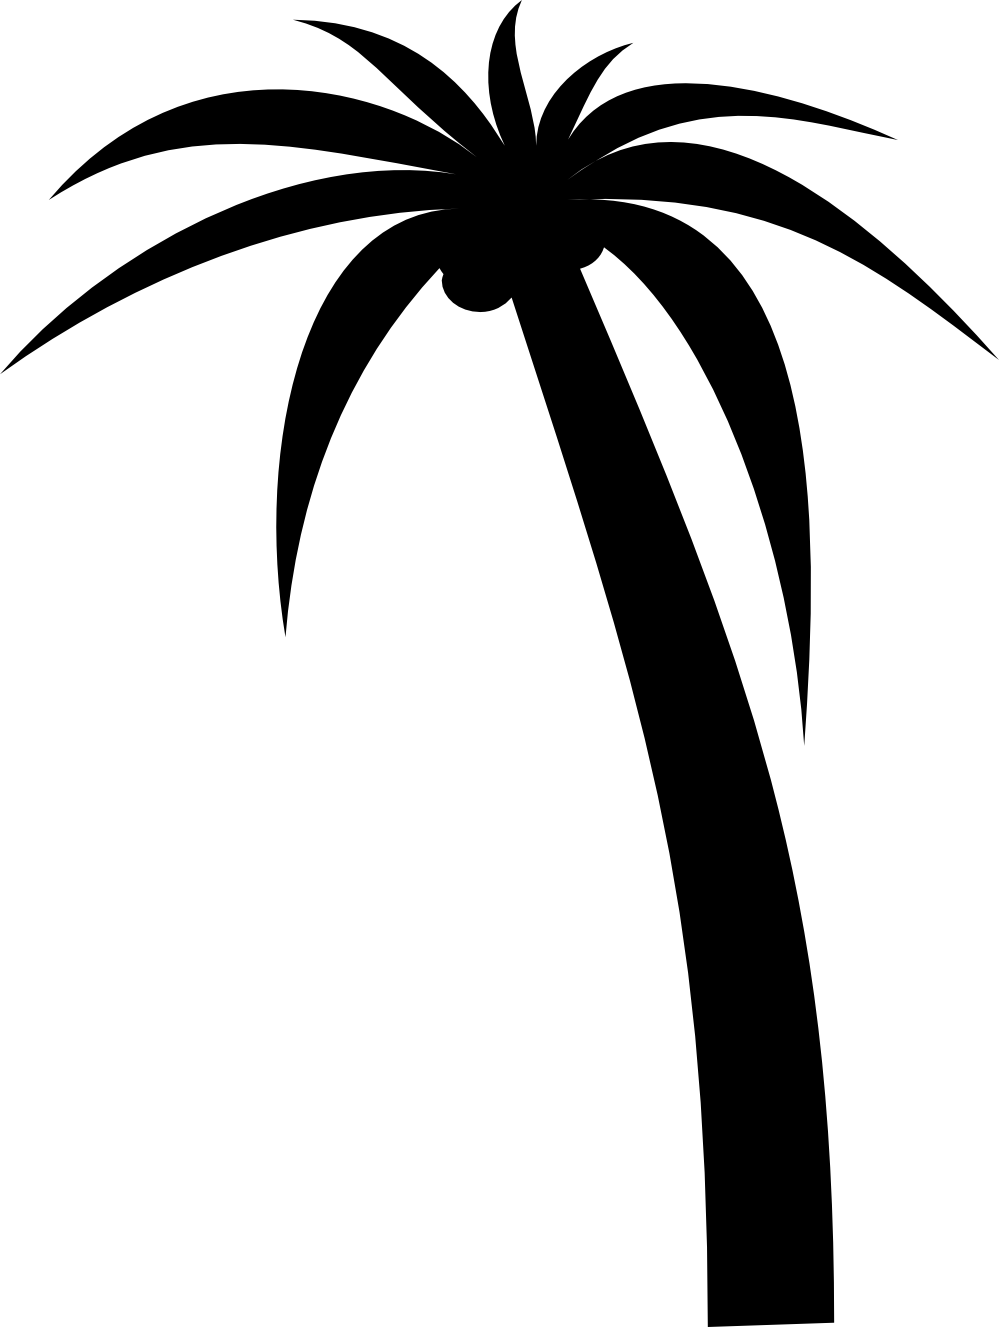 Palm tree sunset clipart 400 pixel by 150 pxl clipart Palm tree silhouette sunset clipart - ClipartFest clipart